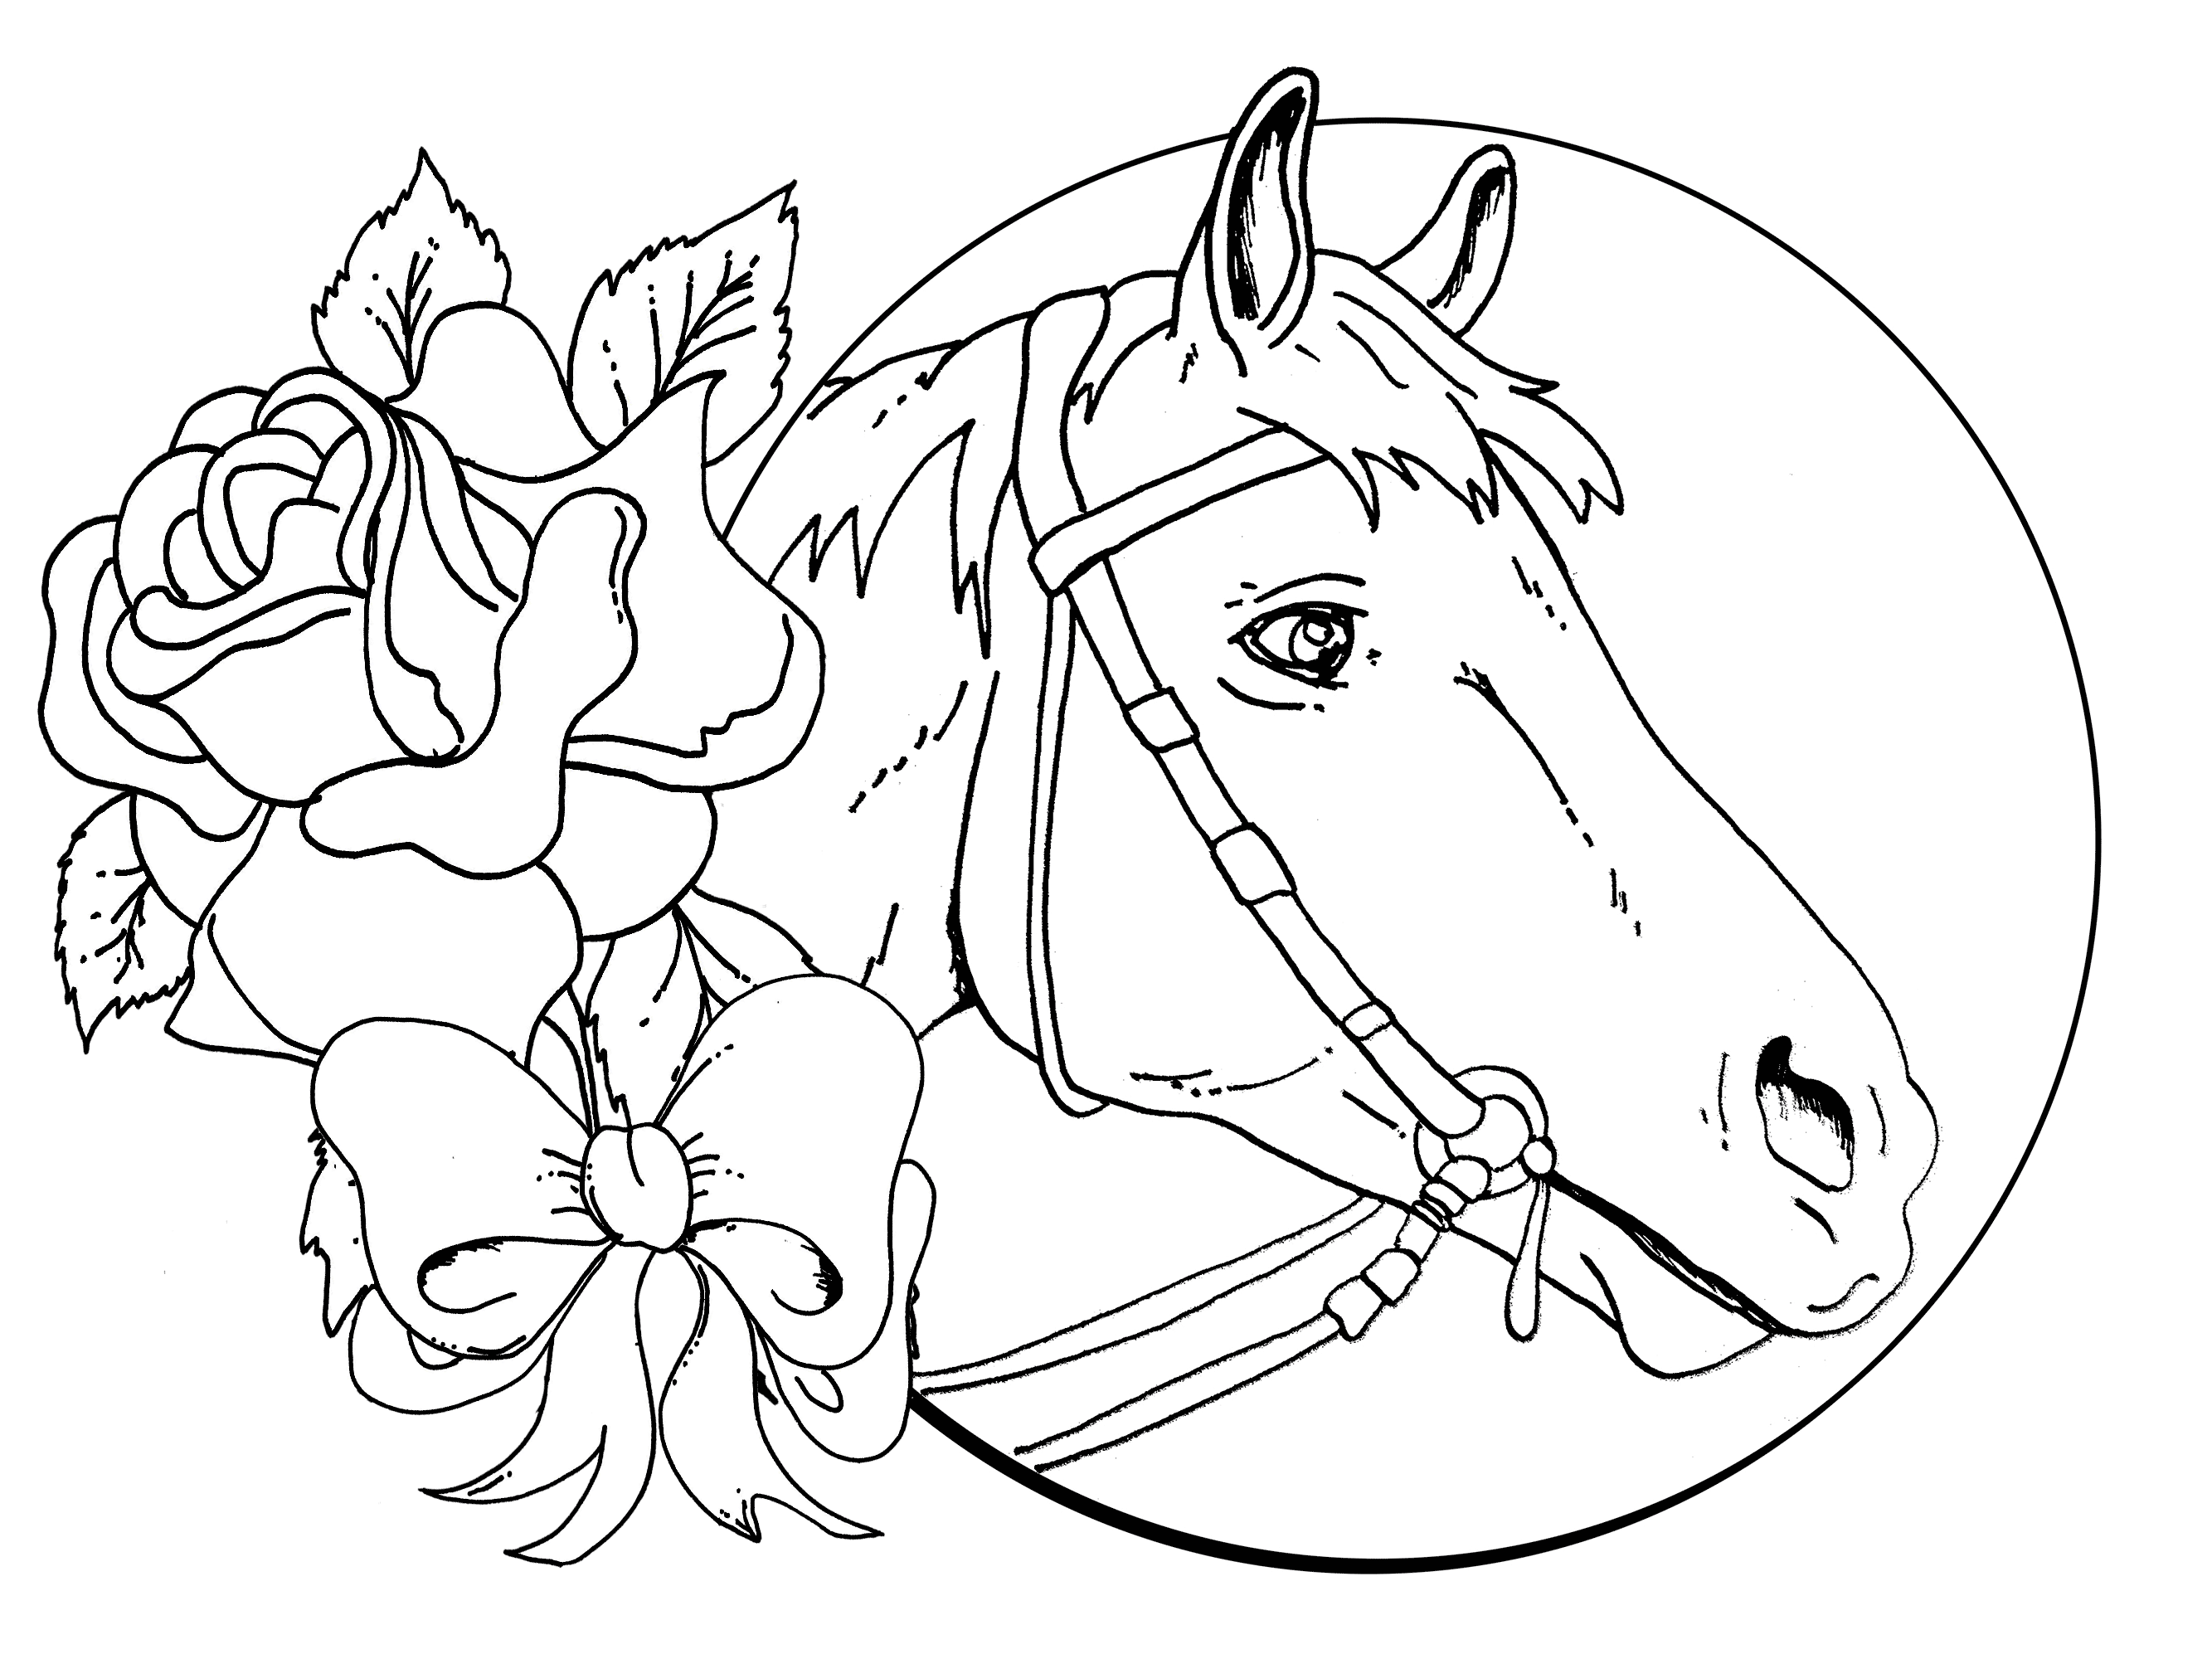 Jungle book coloring pages online - Detailed Christmas Coloring Pages Download Horse Coloring Pages For Girls